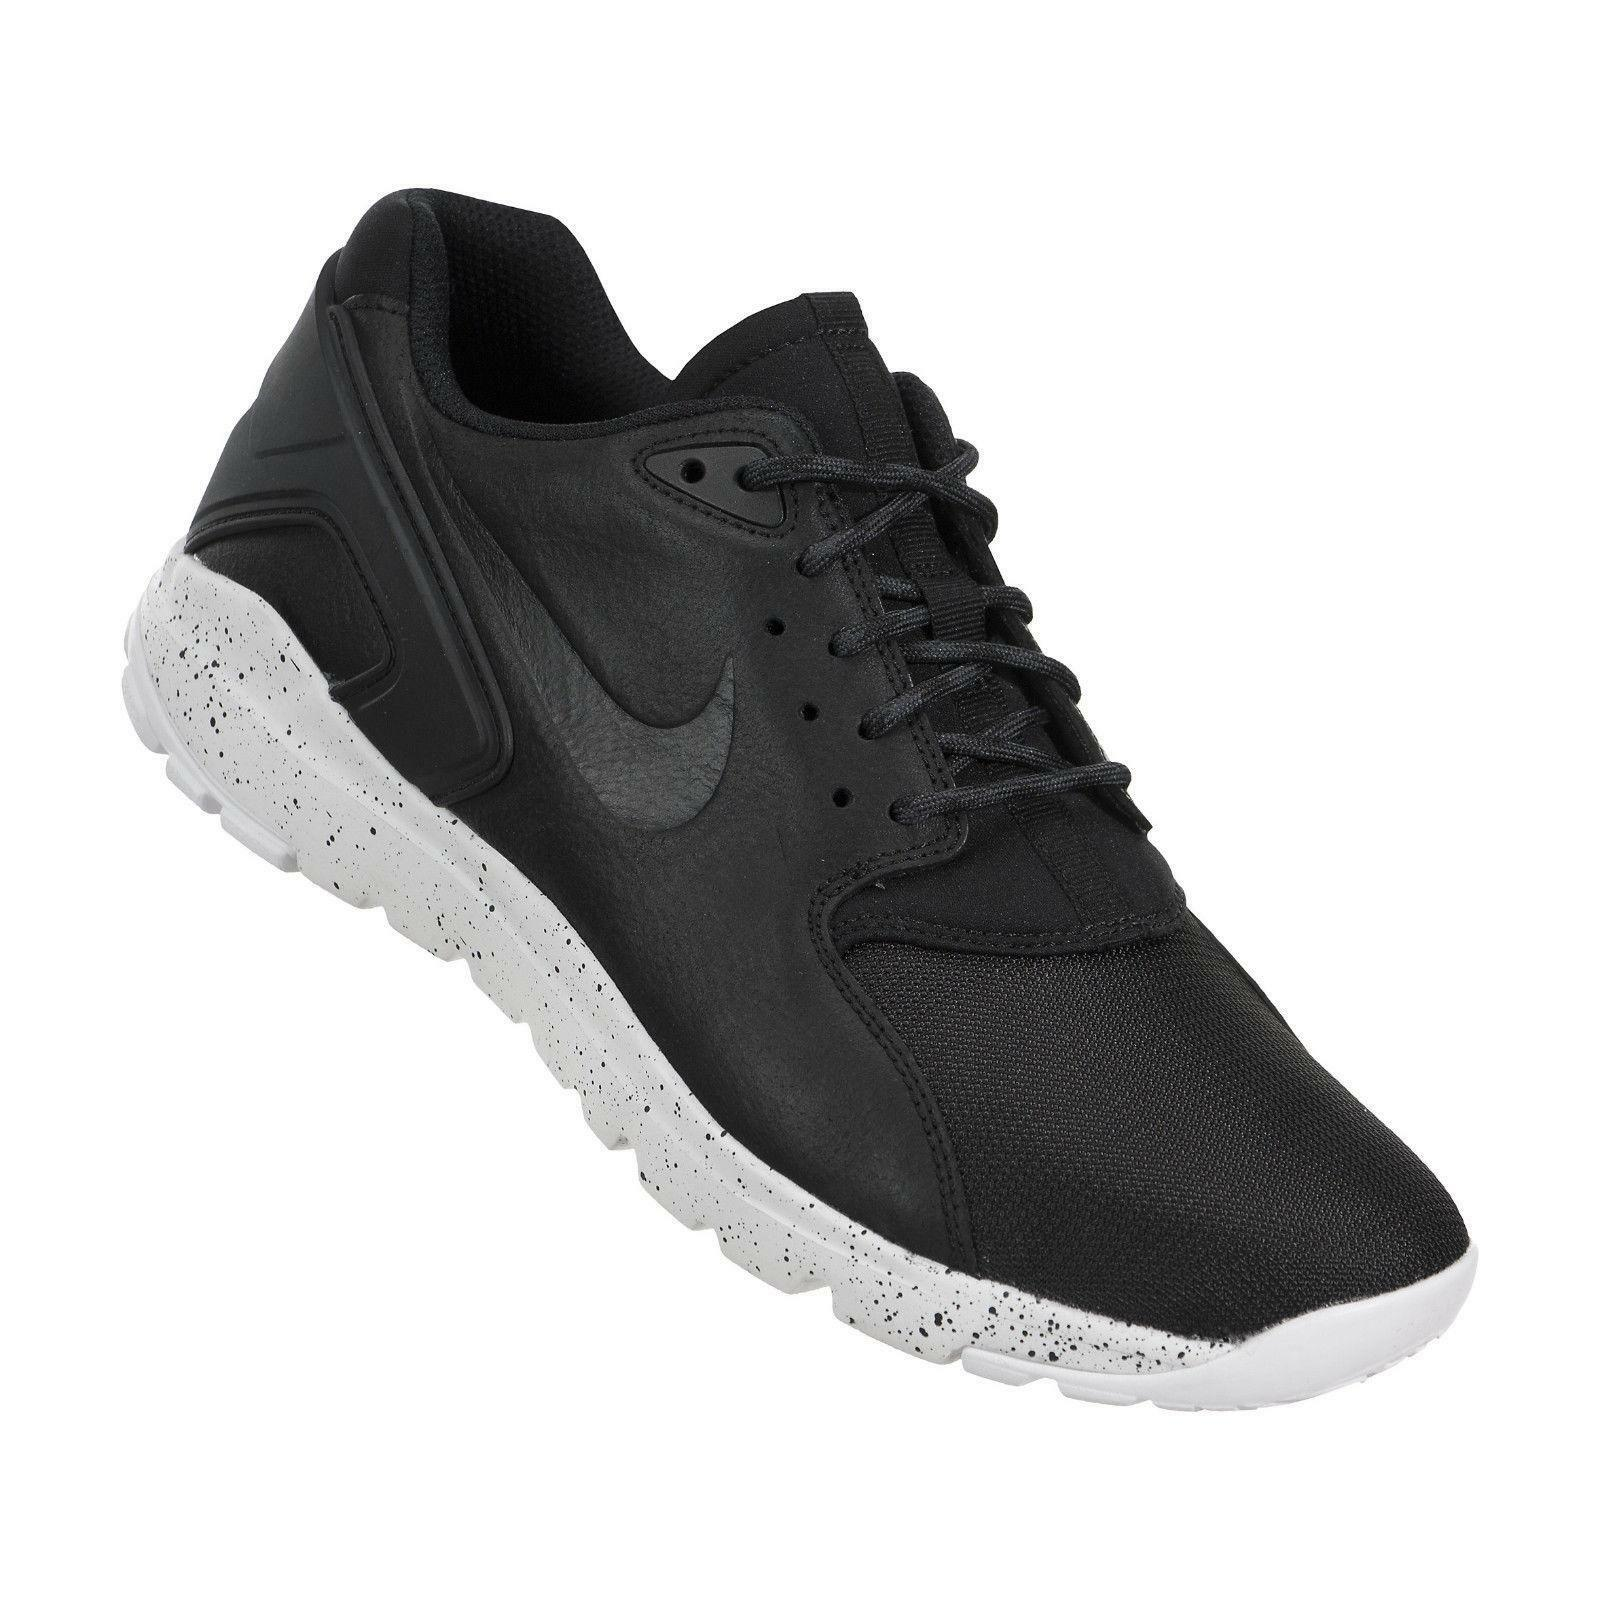 Homme Nike Koth Ultra Low Cuir Noir Baskets 749486 001